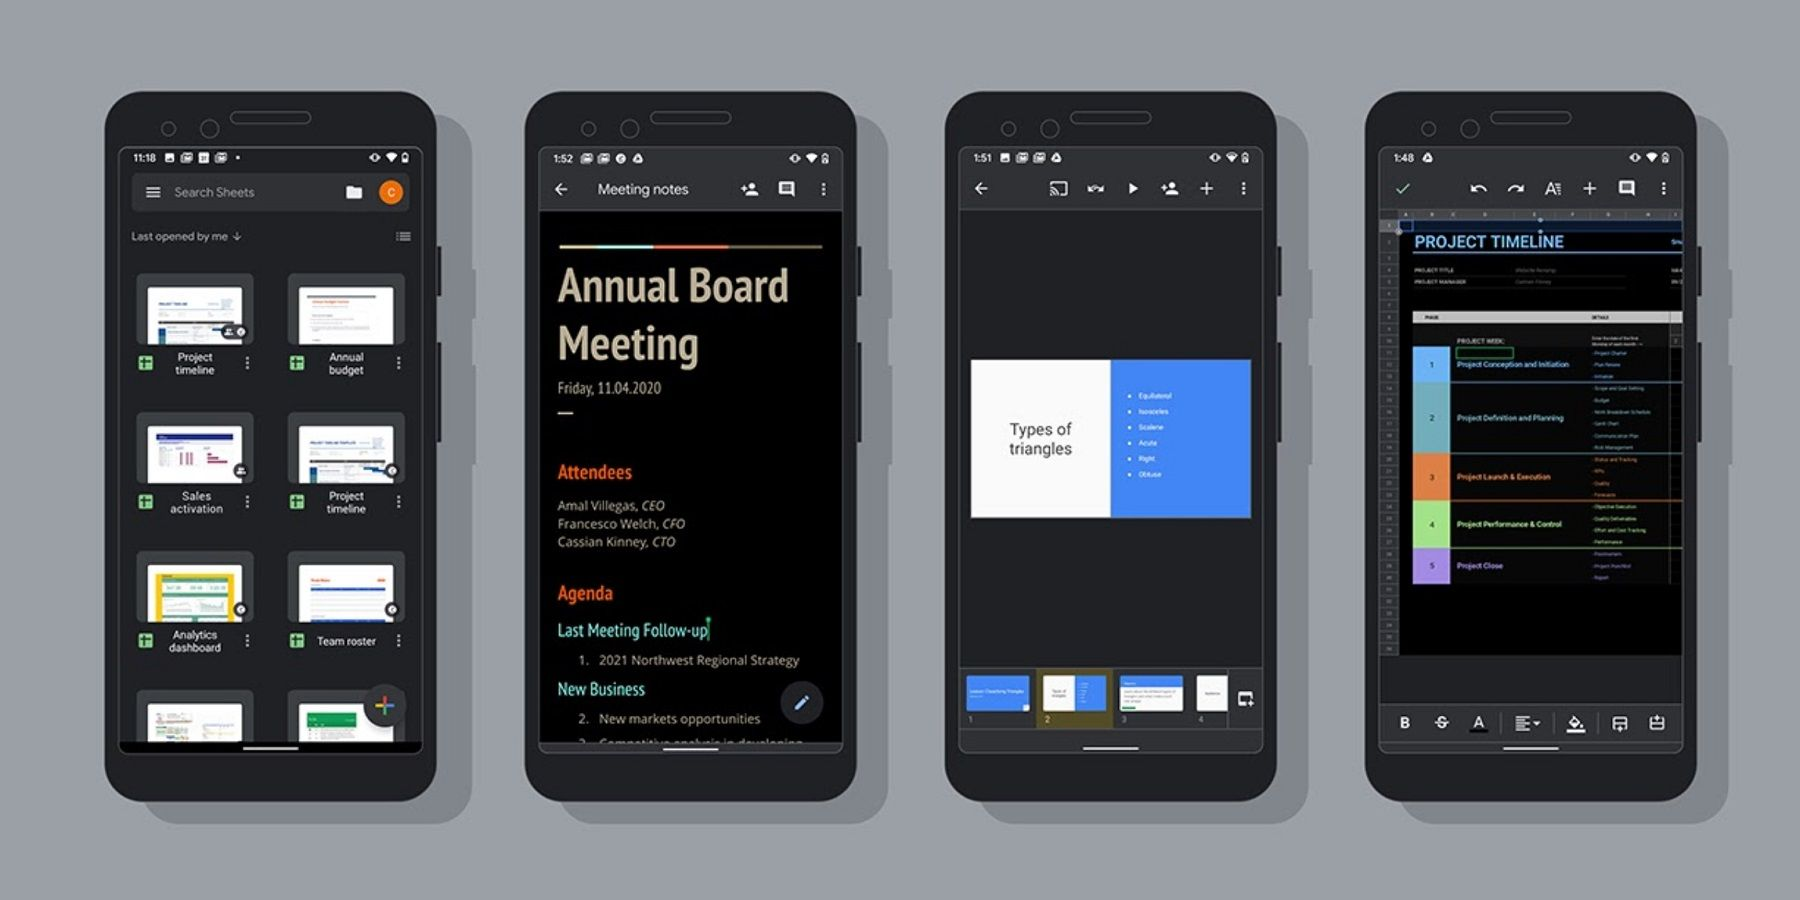 Google Docs Sheets Slides Android Apps Gain Dark Mode Support